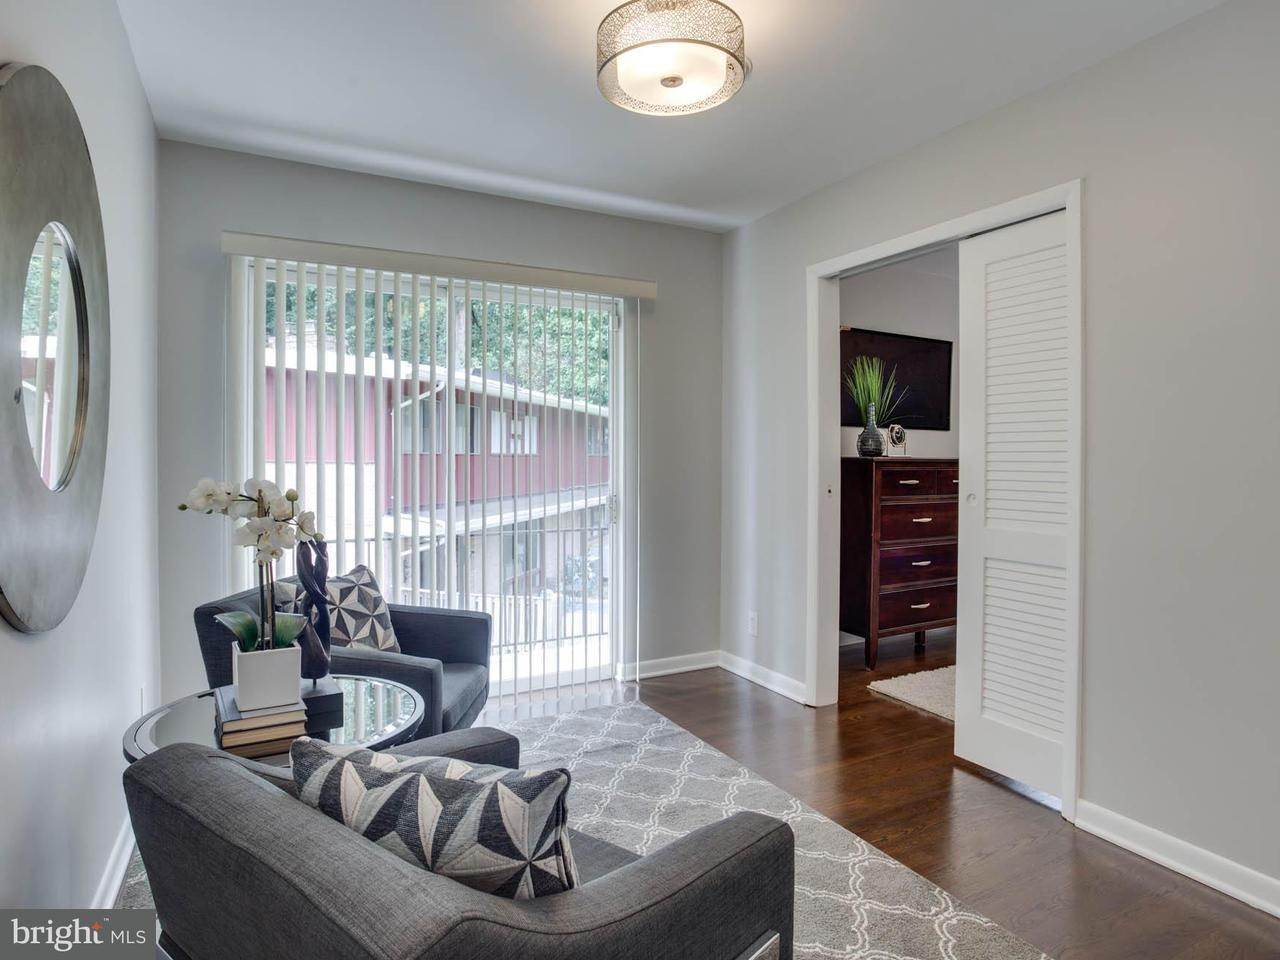 Additional photo for property listing at 4200 OLD COLUMBIA PIKE 4200 OLD COLUMBIA PIKE Annandale, Virginia 22003 Stati Uniti